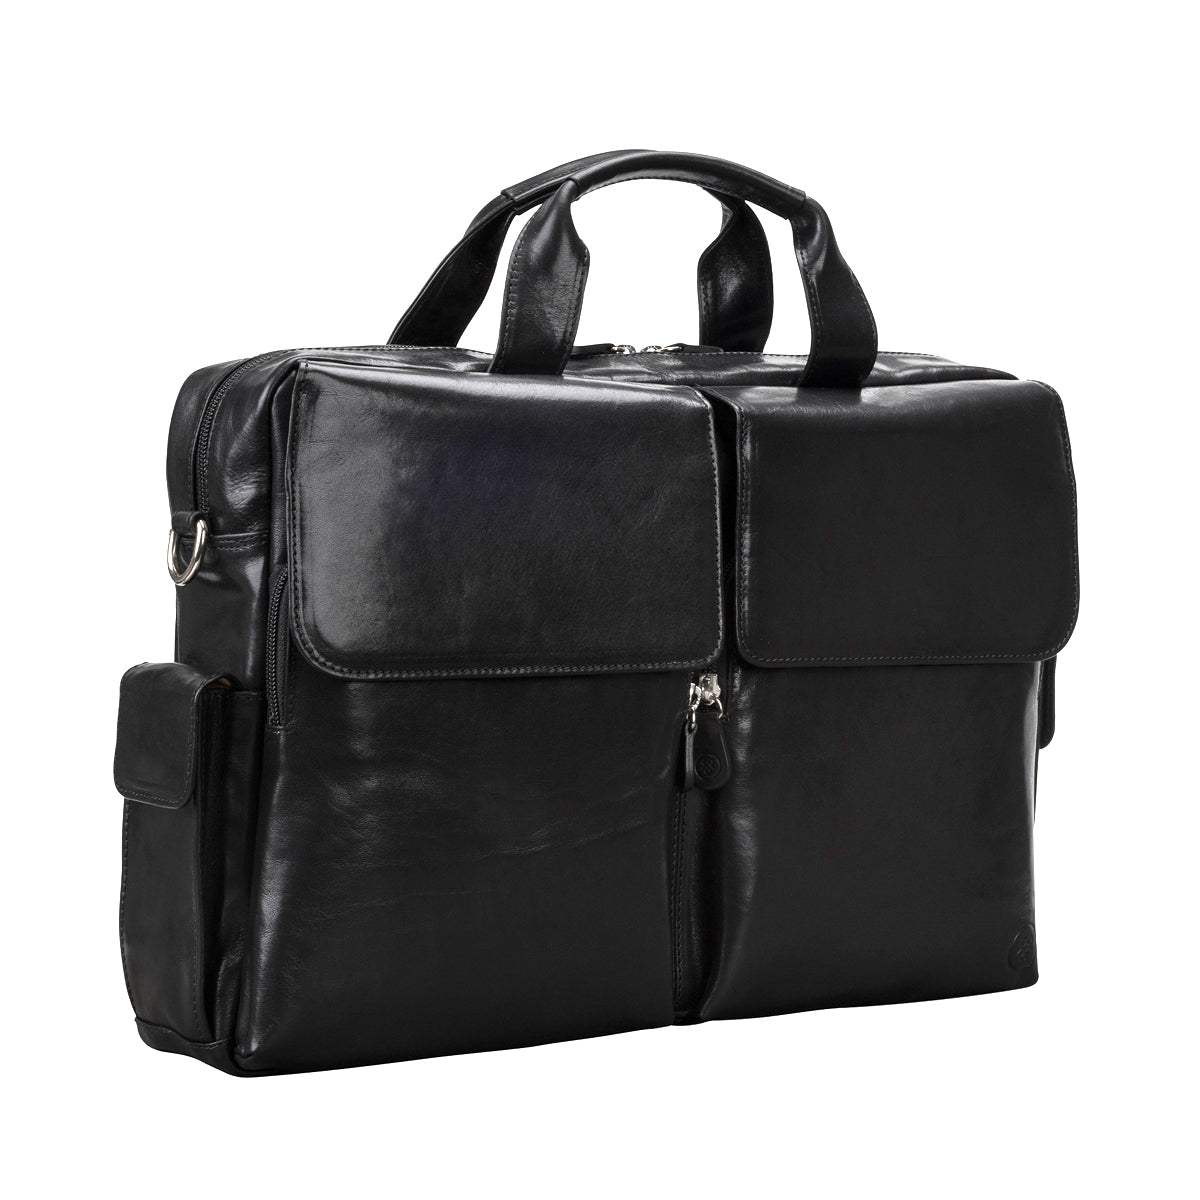 Image 2 of the 'Lagaro' Black Veg-Tanned Leather Briefcase